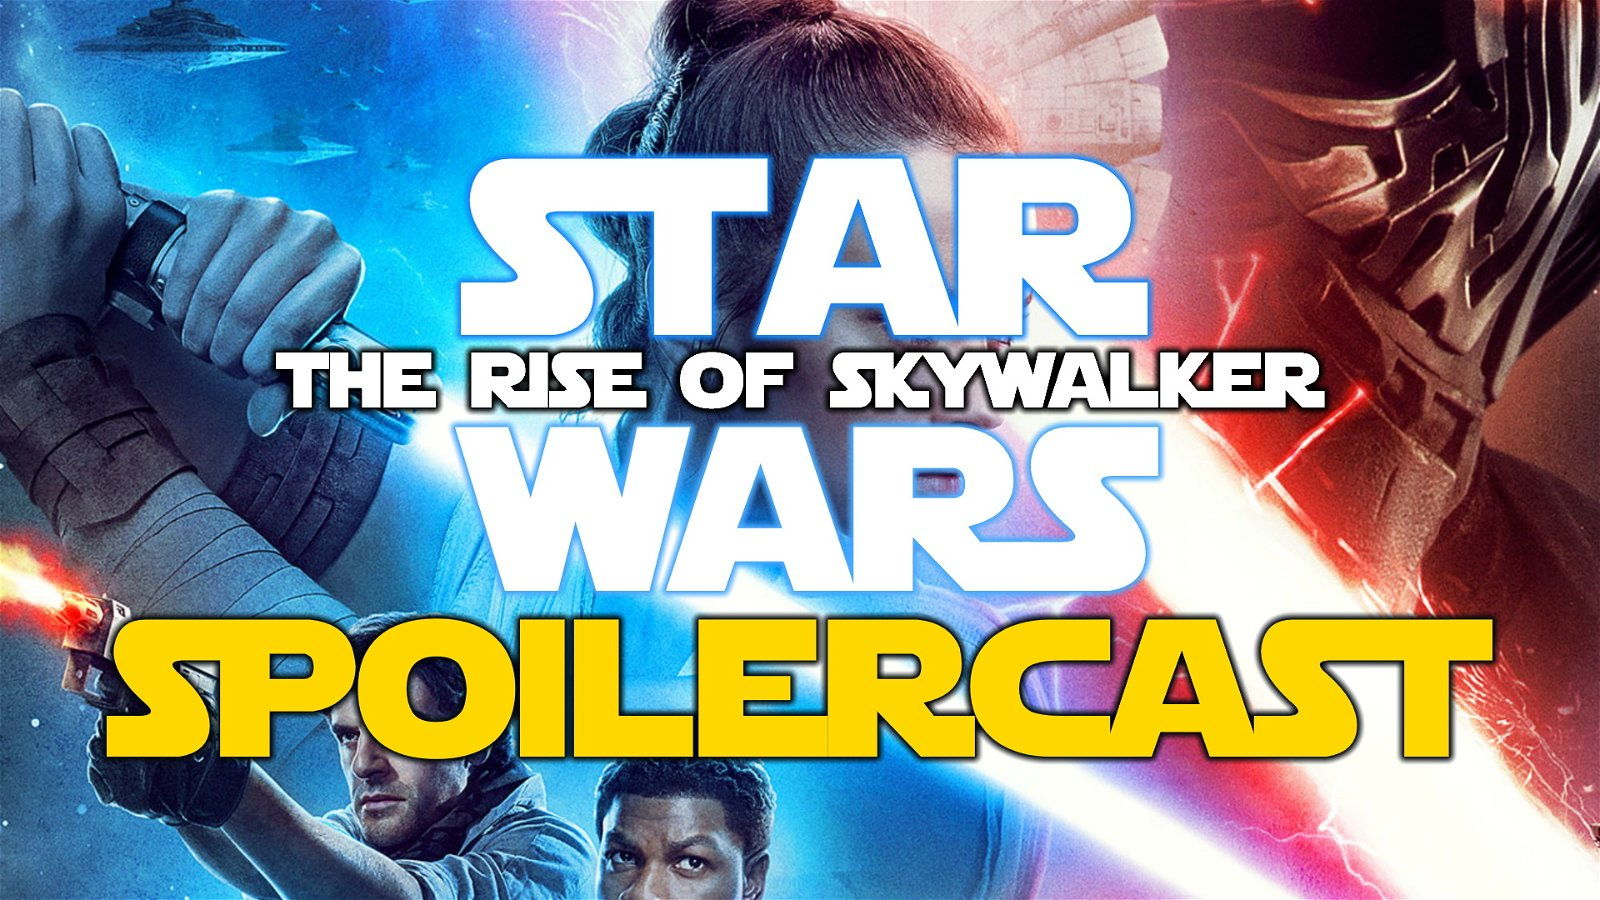 Star Wars Episode IX: The Rise of Skywalker Spoilercast